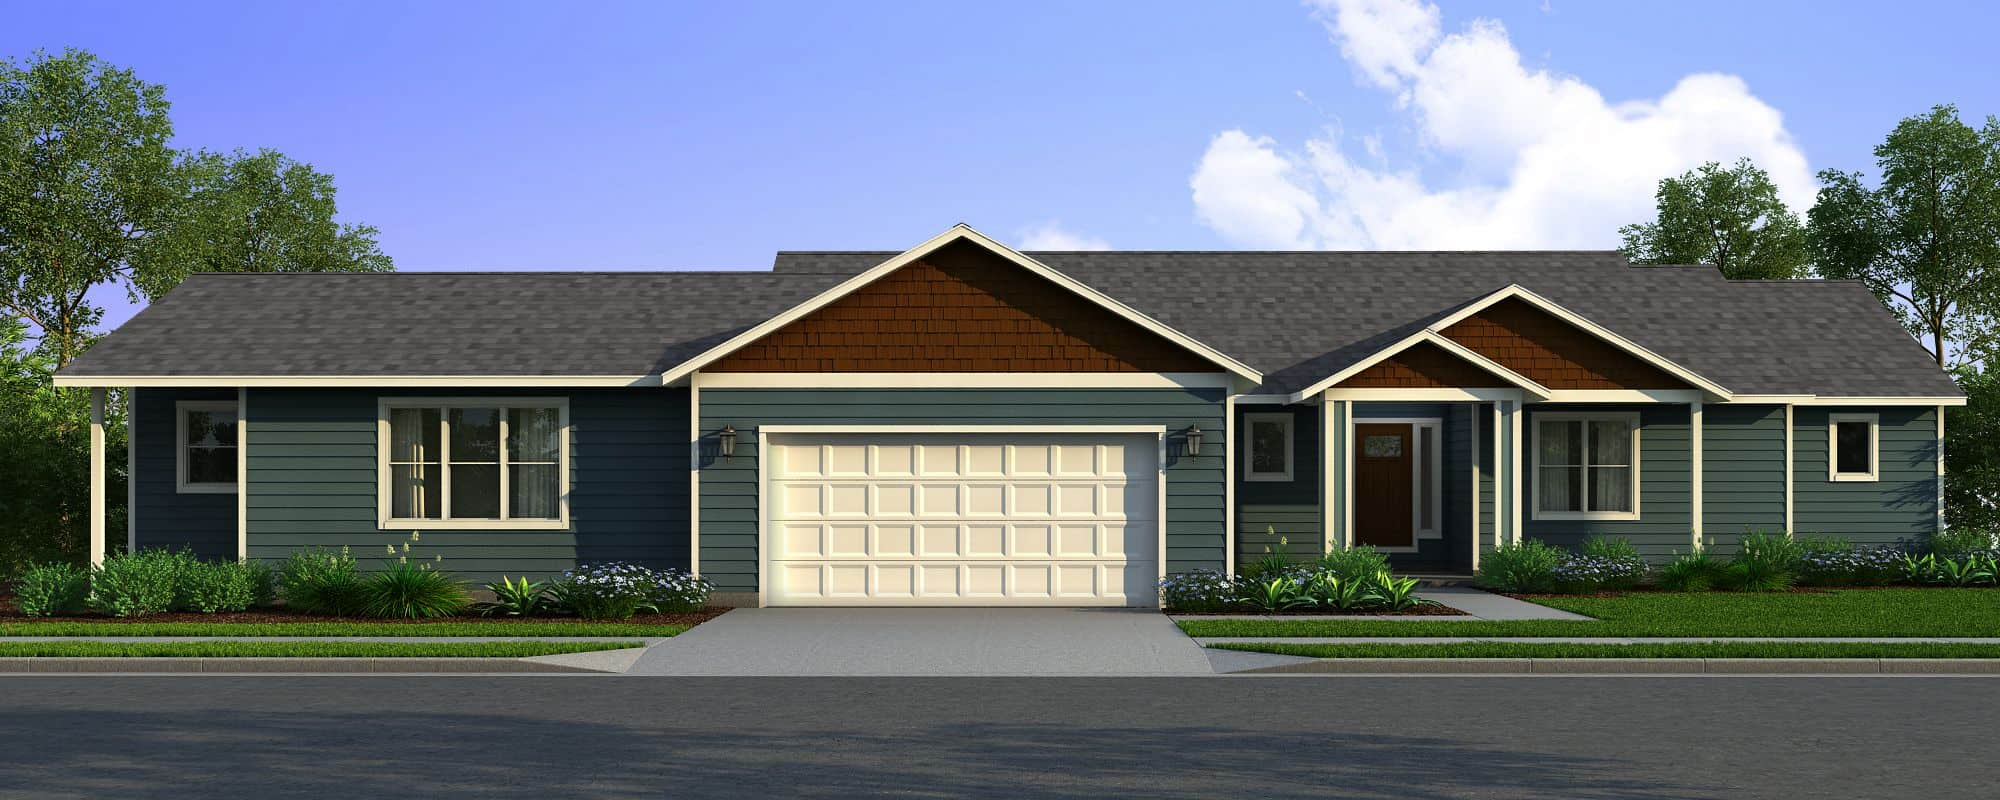 Rambler Homes Multi Generational Home Plans True Built Home Pacific